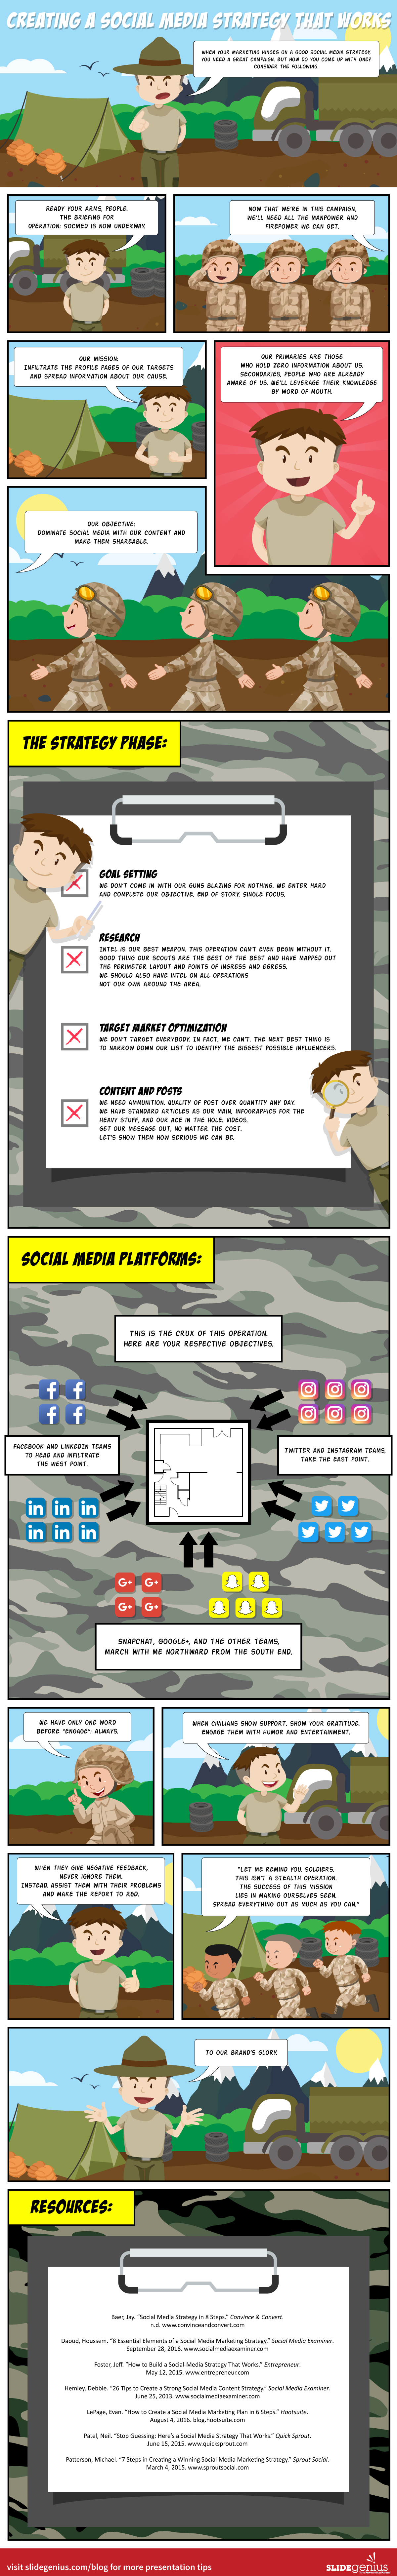 How Your Social Media Marketing Strategy Stacks Up Against the Real World - infographic